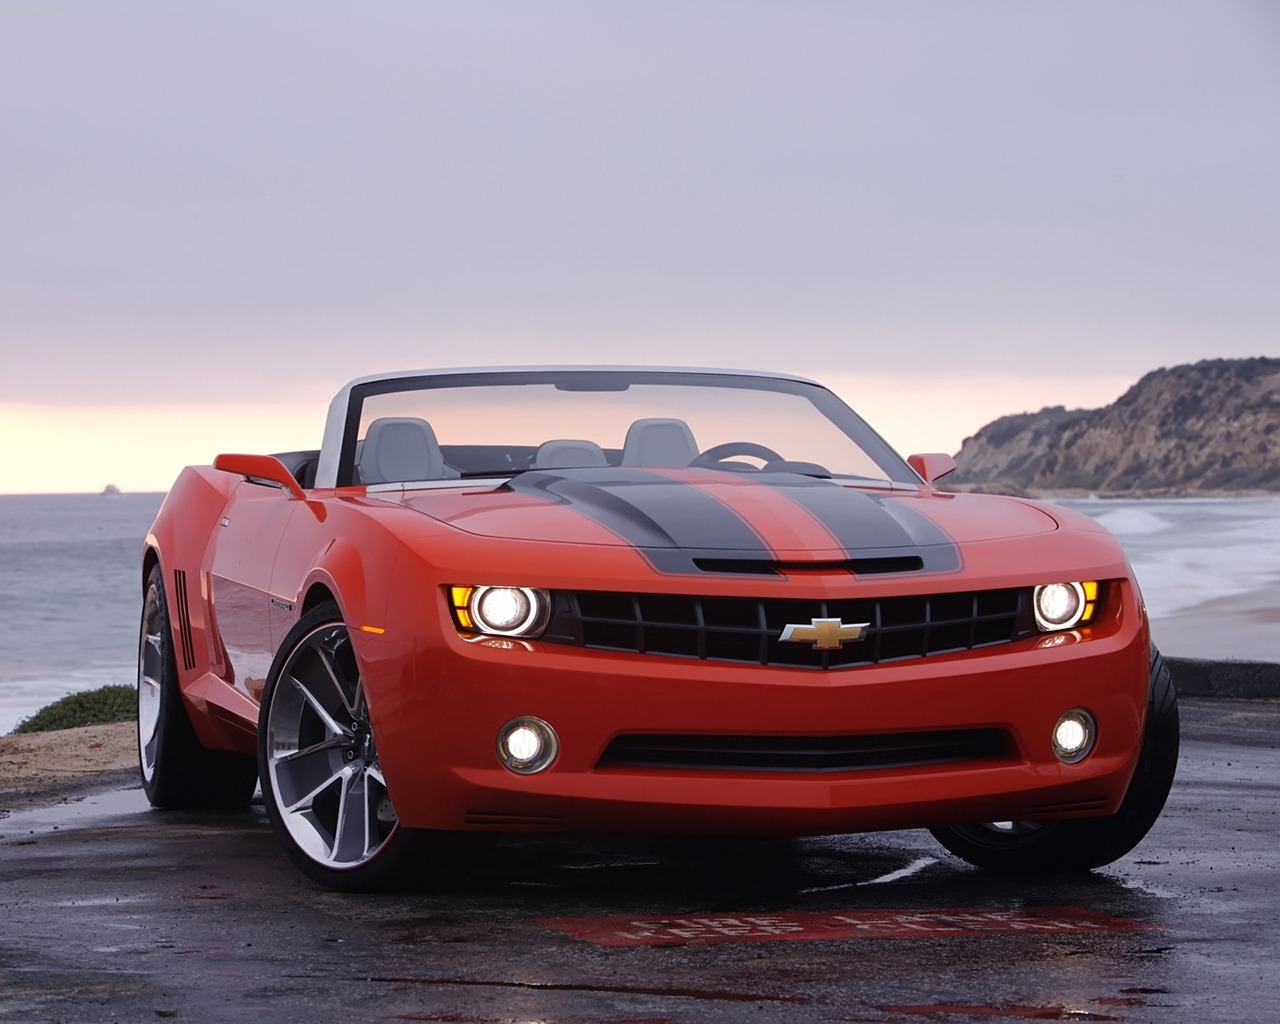 Camaro Convertible Wallpaper Chevrolet Cars Wallpapers in jpg format for free download